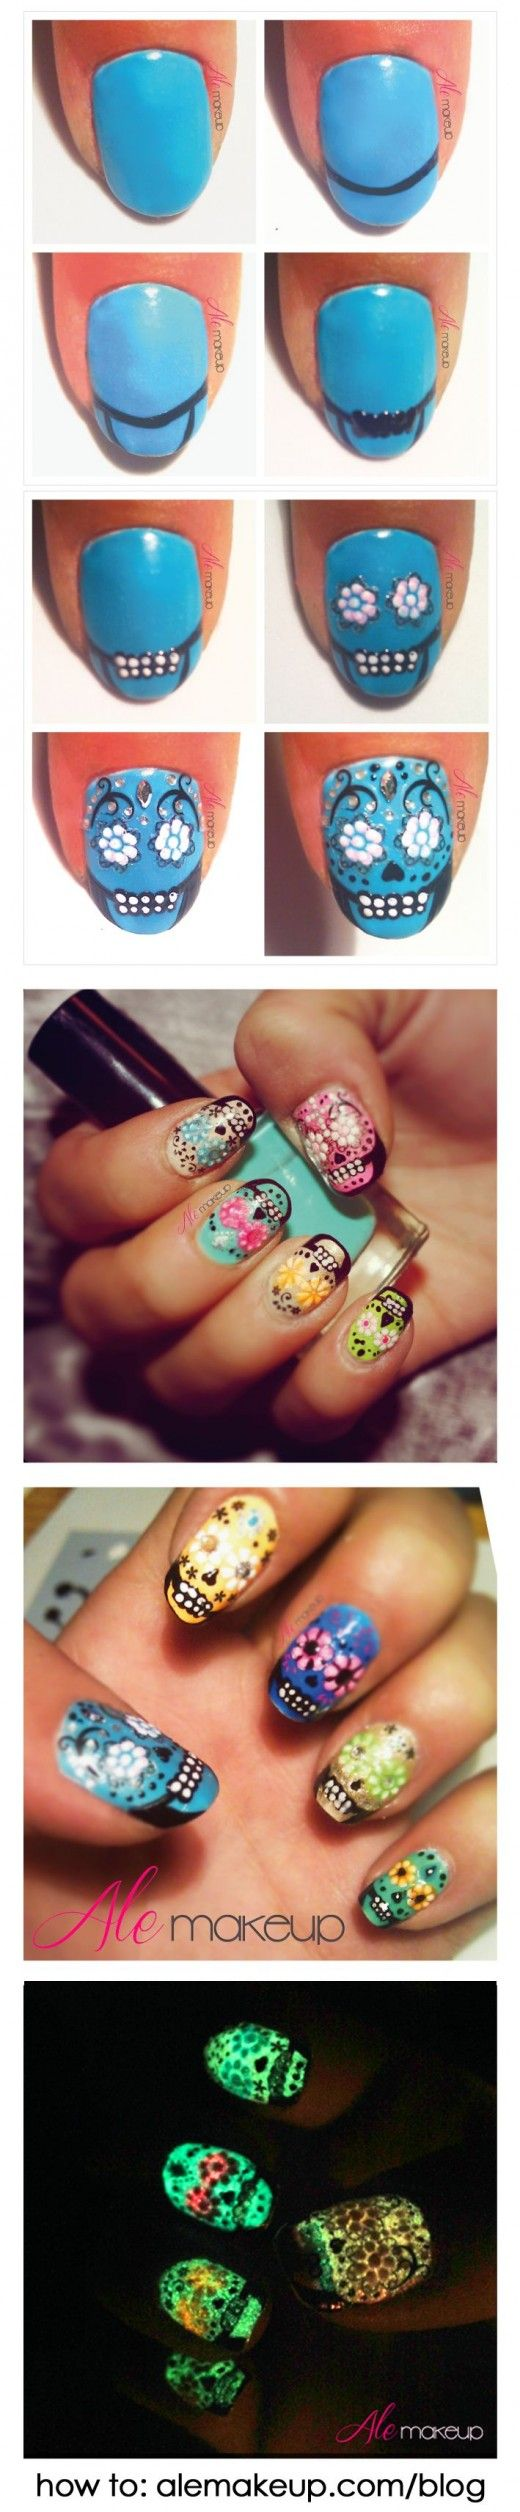 sugar skull tutorial makeup beauty nails glow in the dark